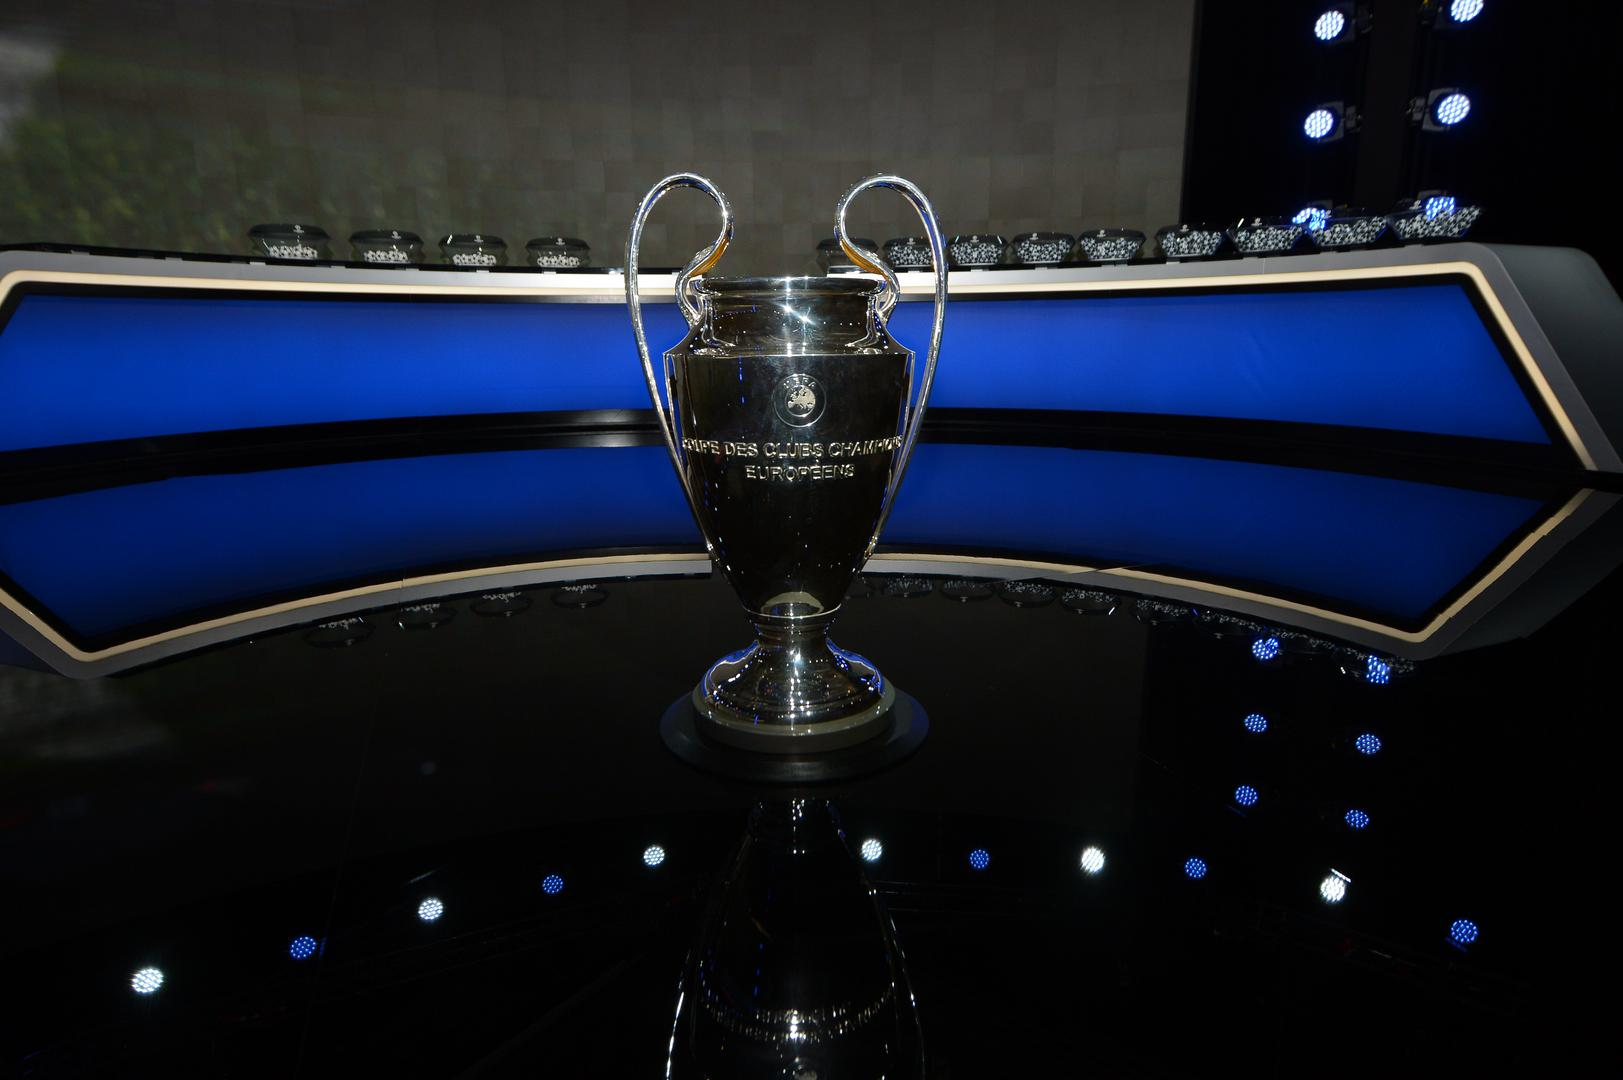 Trofeo Champions League draw.